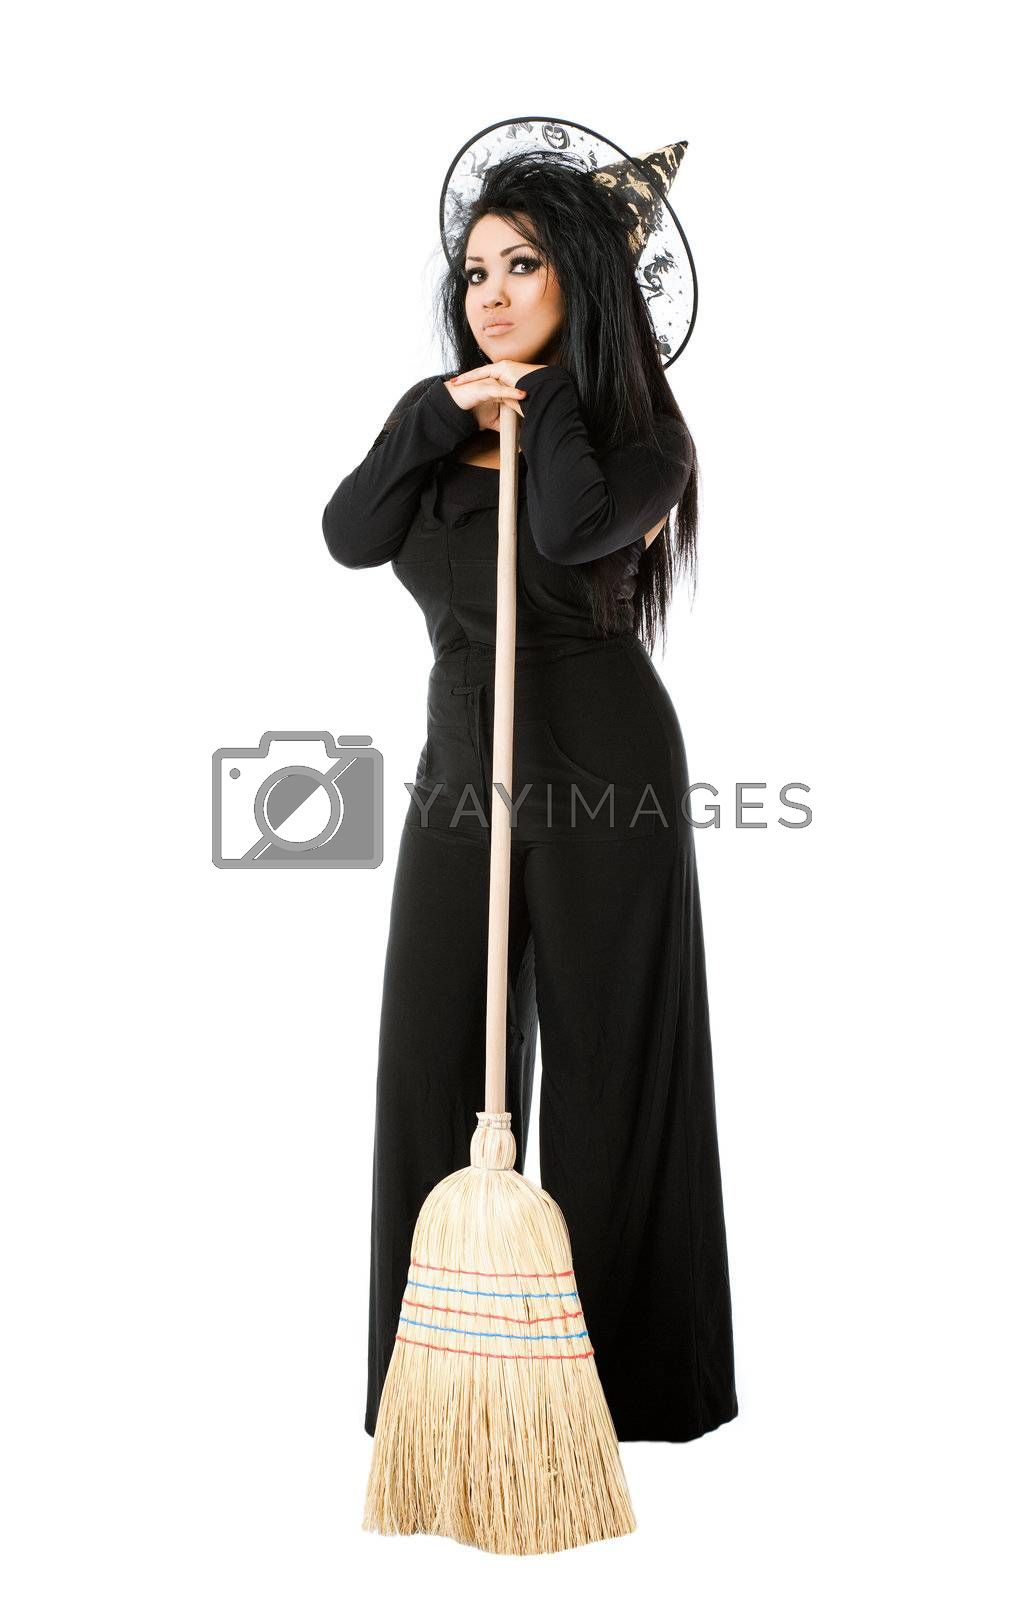 Young female with witch costume standing on white background, leaning on broom